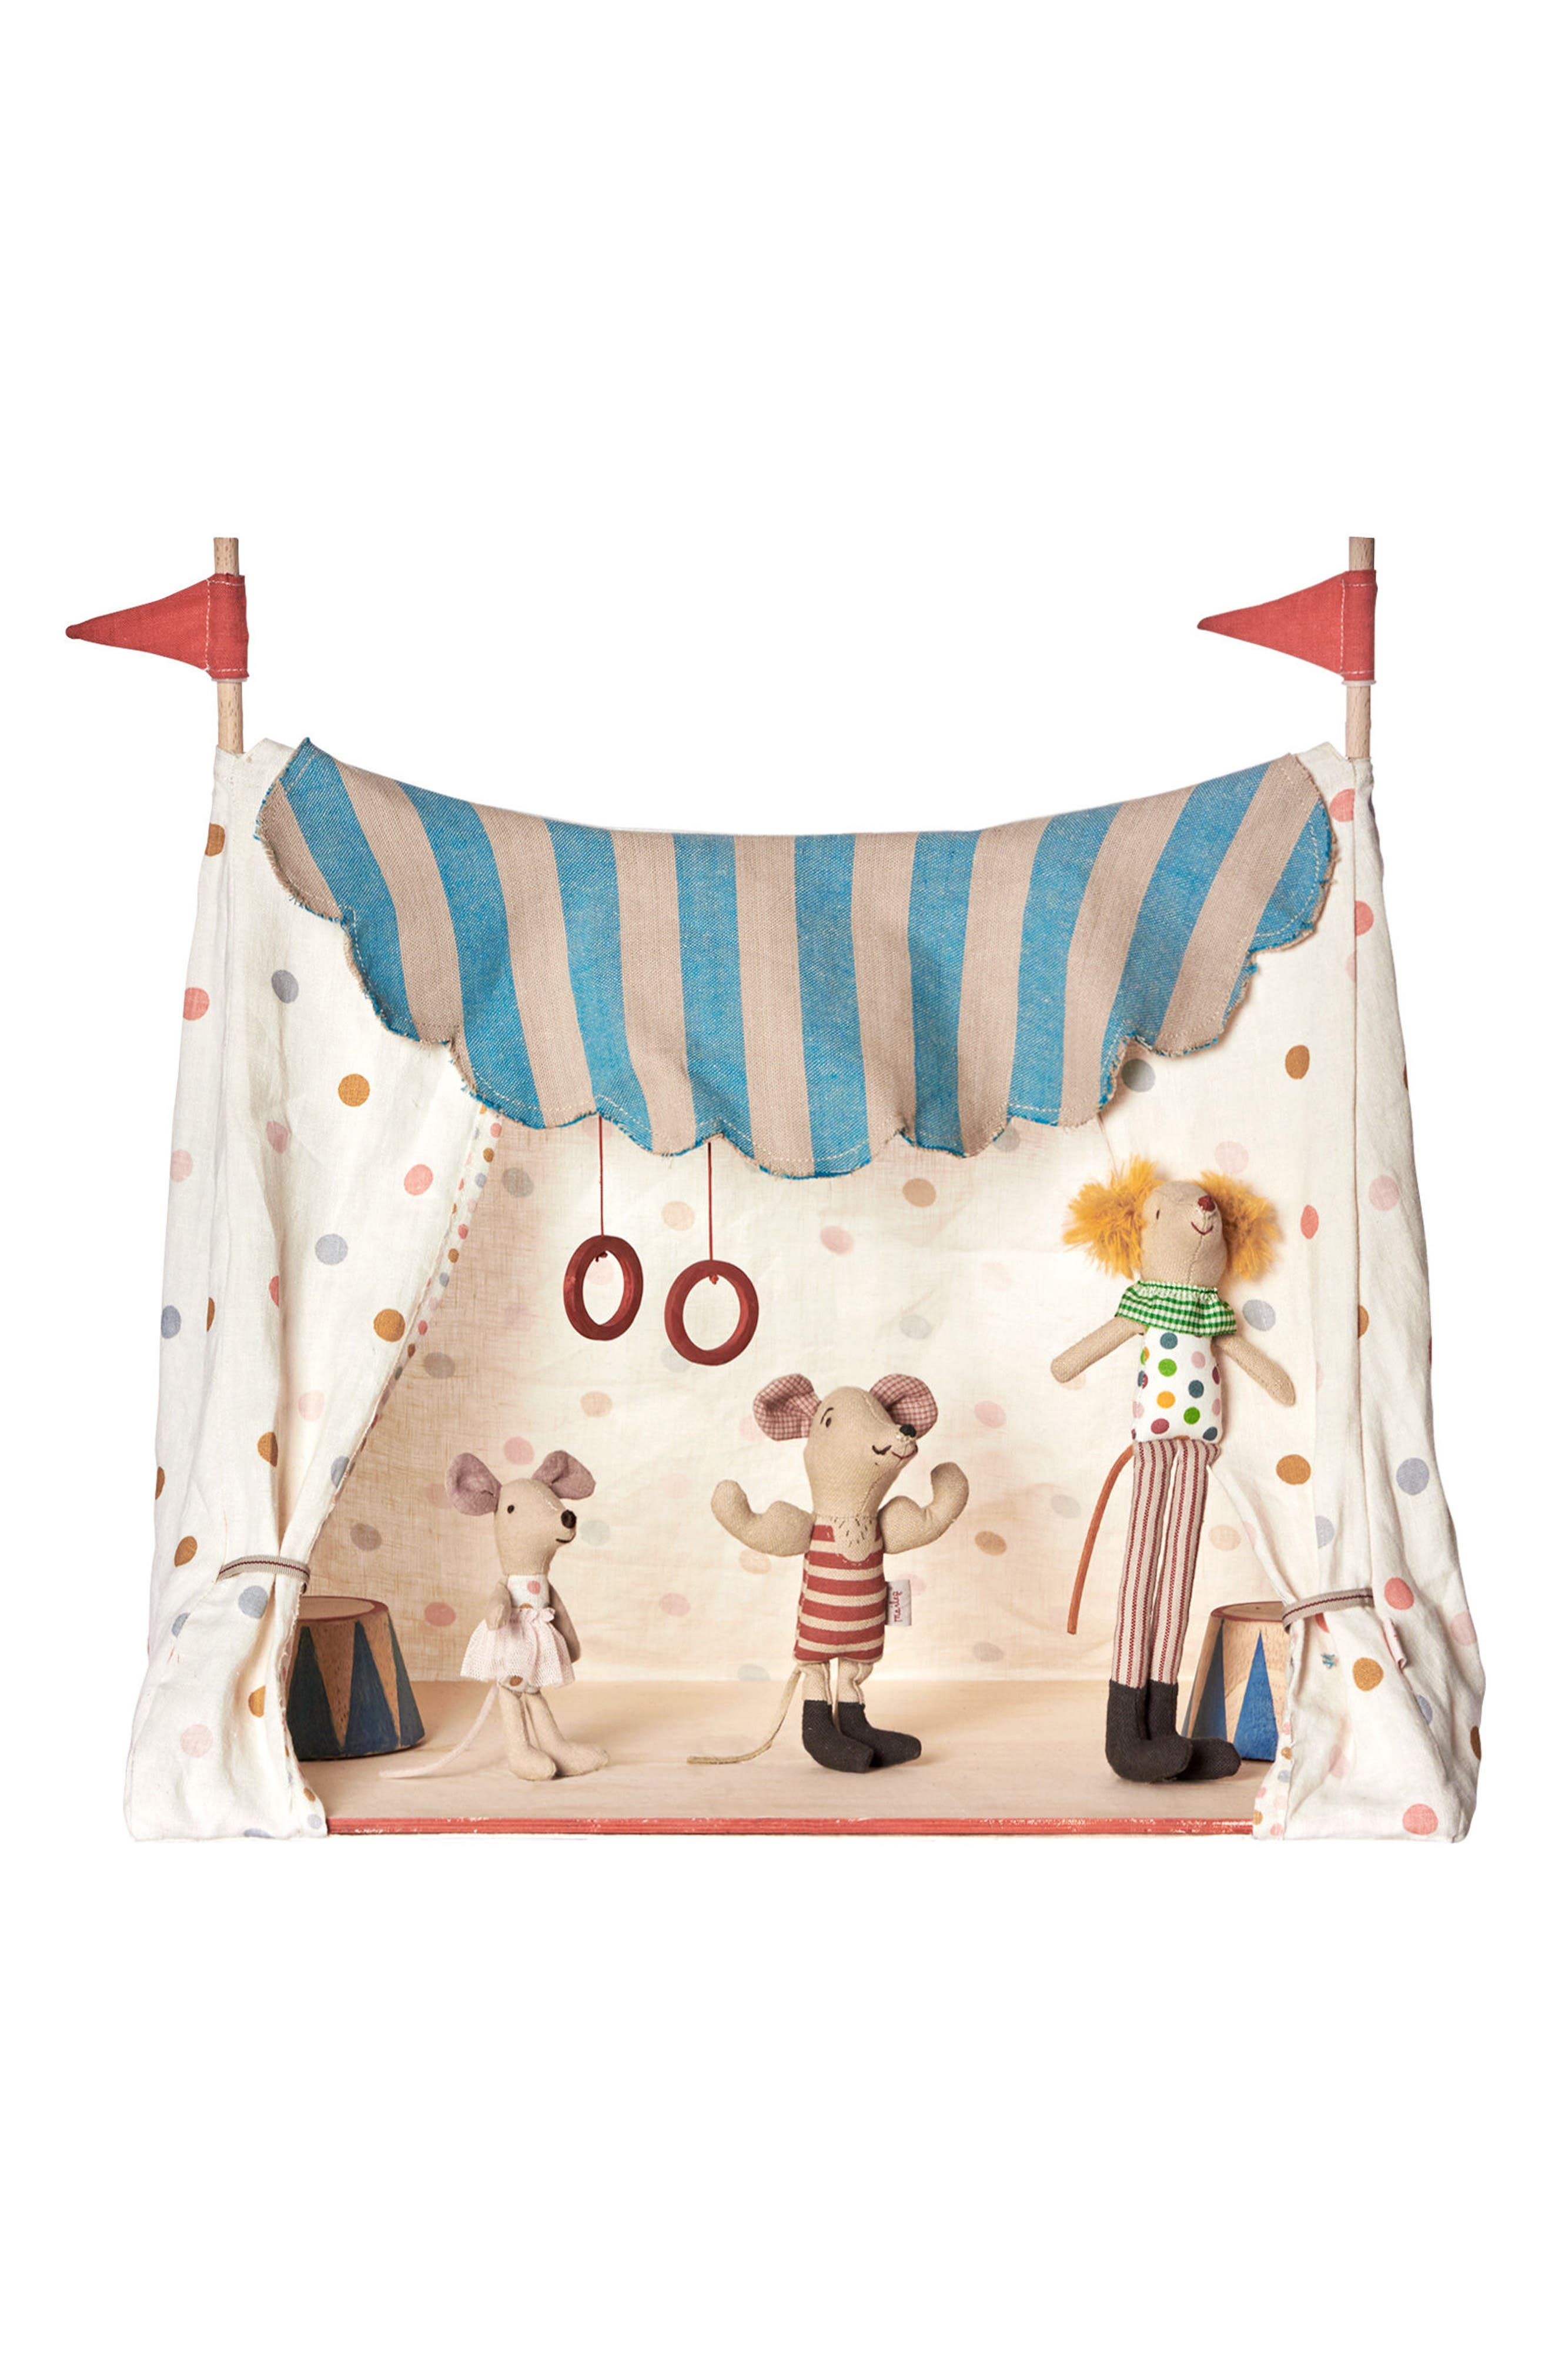 Circus Mice in a Tent,                         Main,                         color, Multi